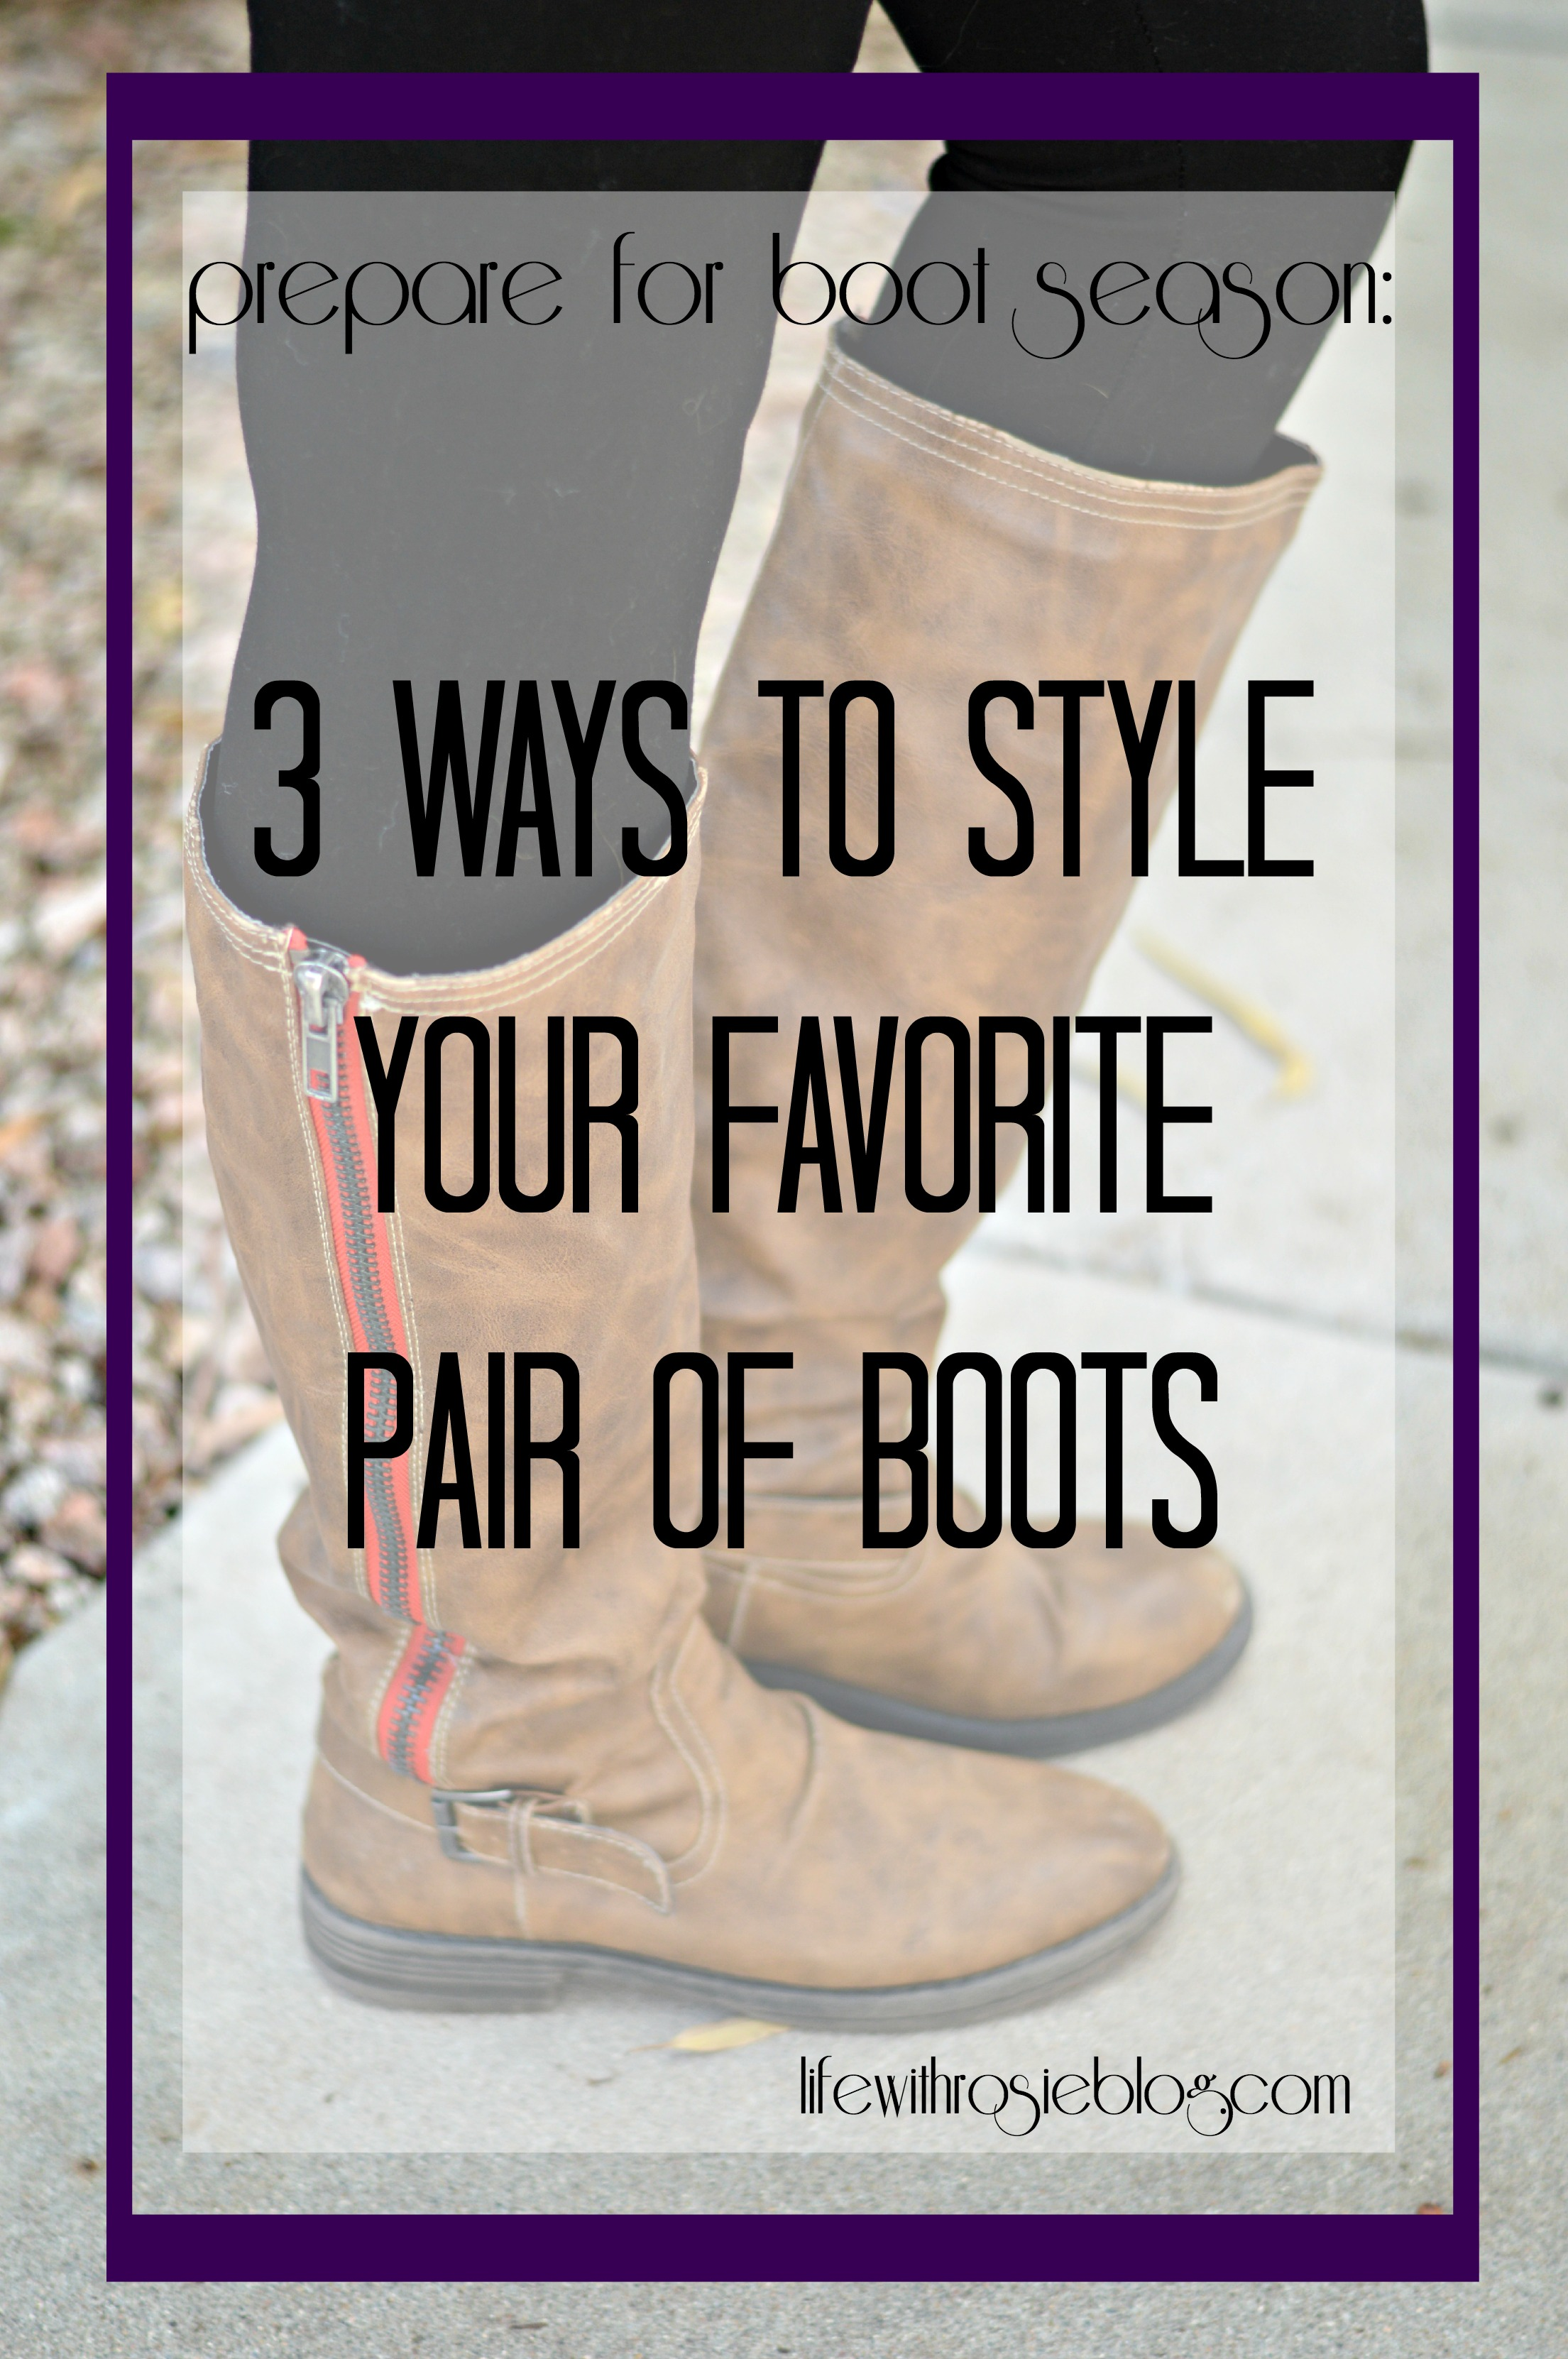 Prepare for Boot Season: 3 Ways to Style your Favorite pair of Boots #ad #byebyeblisters // Life with Rosie